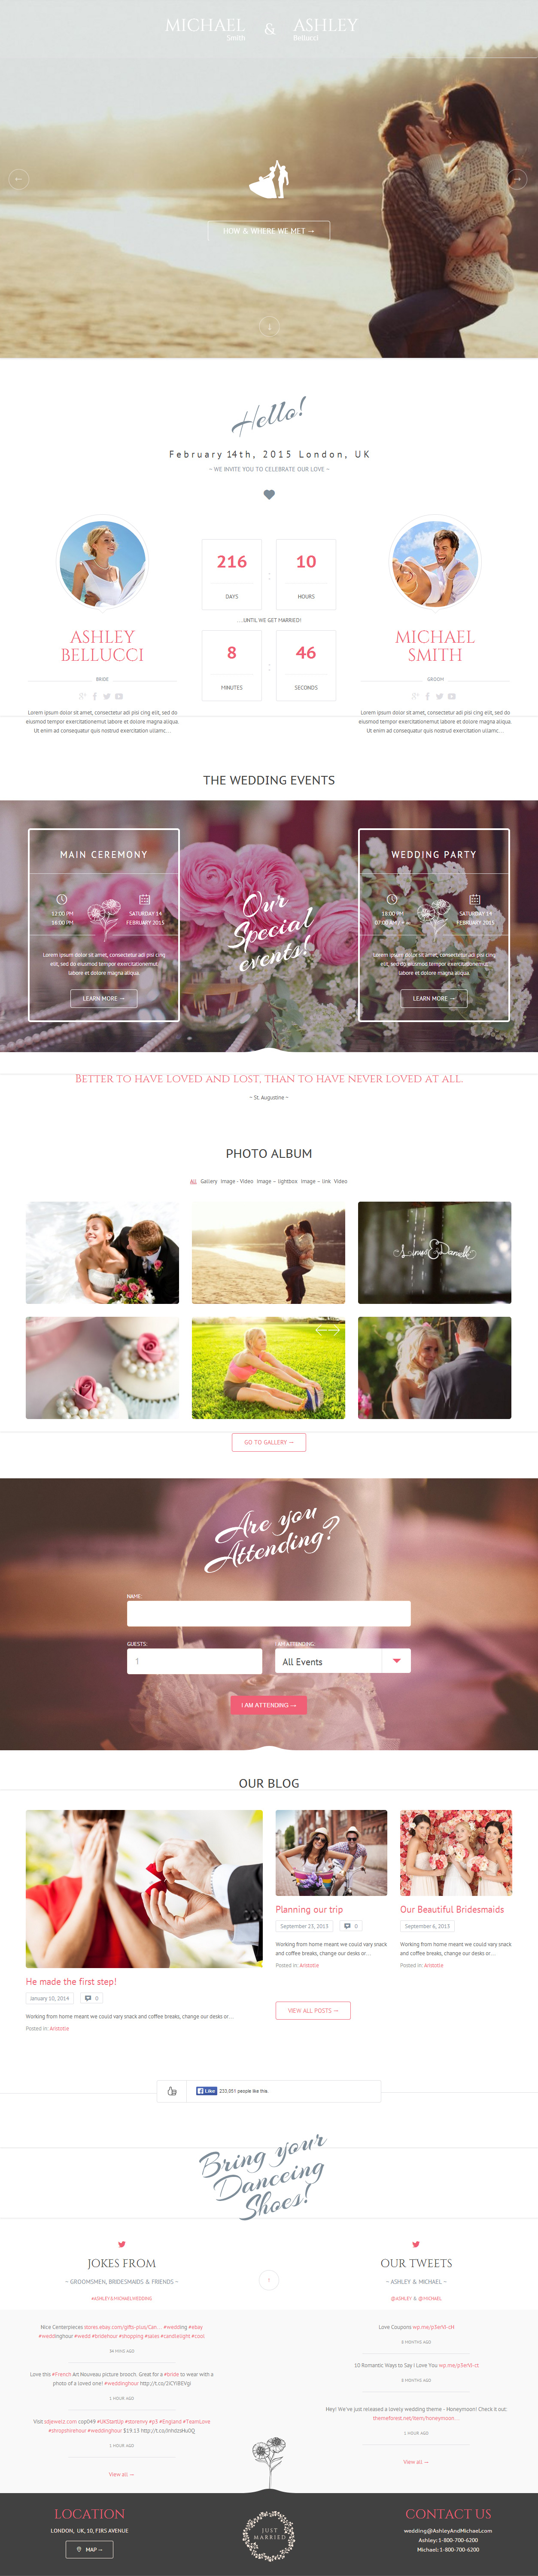 Honeymonn is Premium Responsive Retina Parallax WordPress Wedding ...